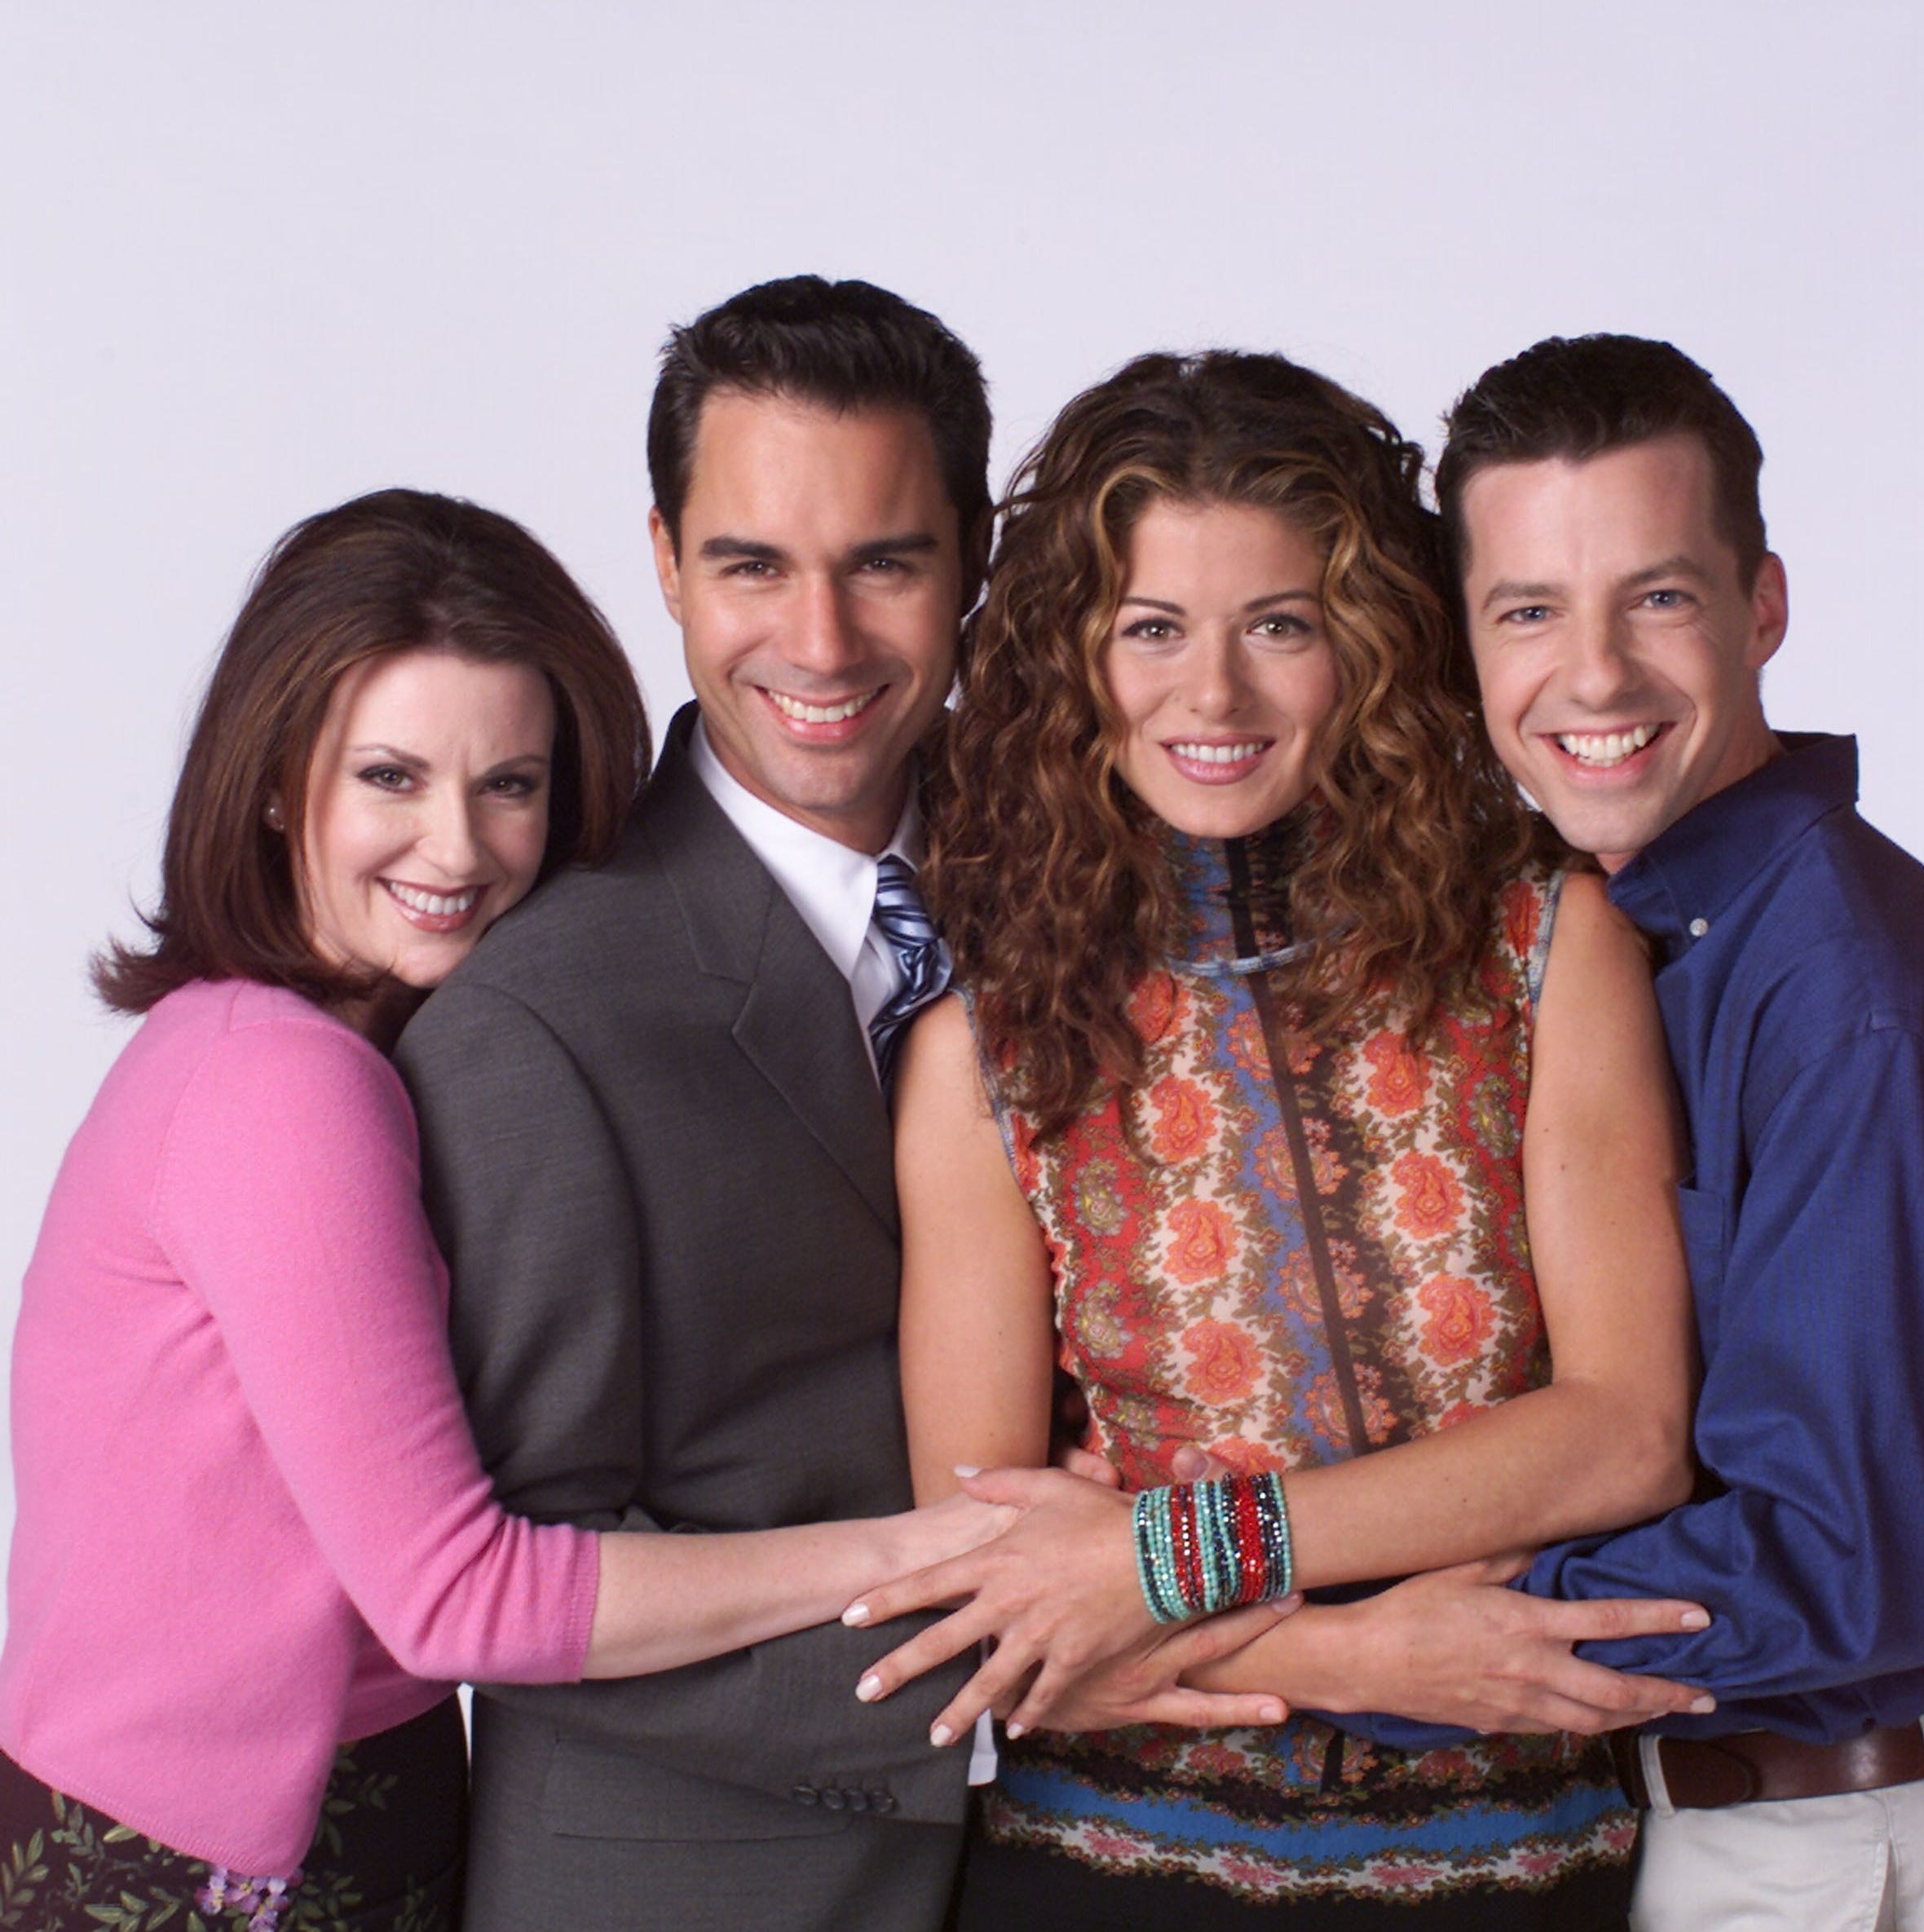 'Will & Grace' turns 20: Where have they been?